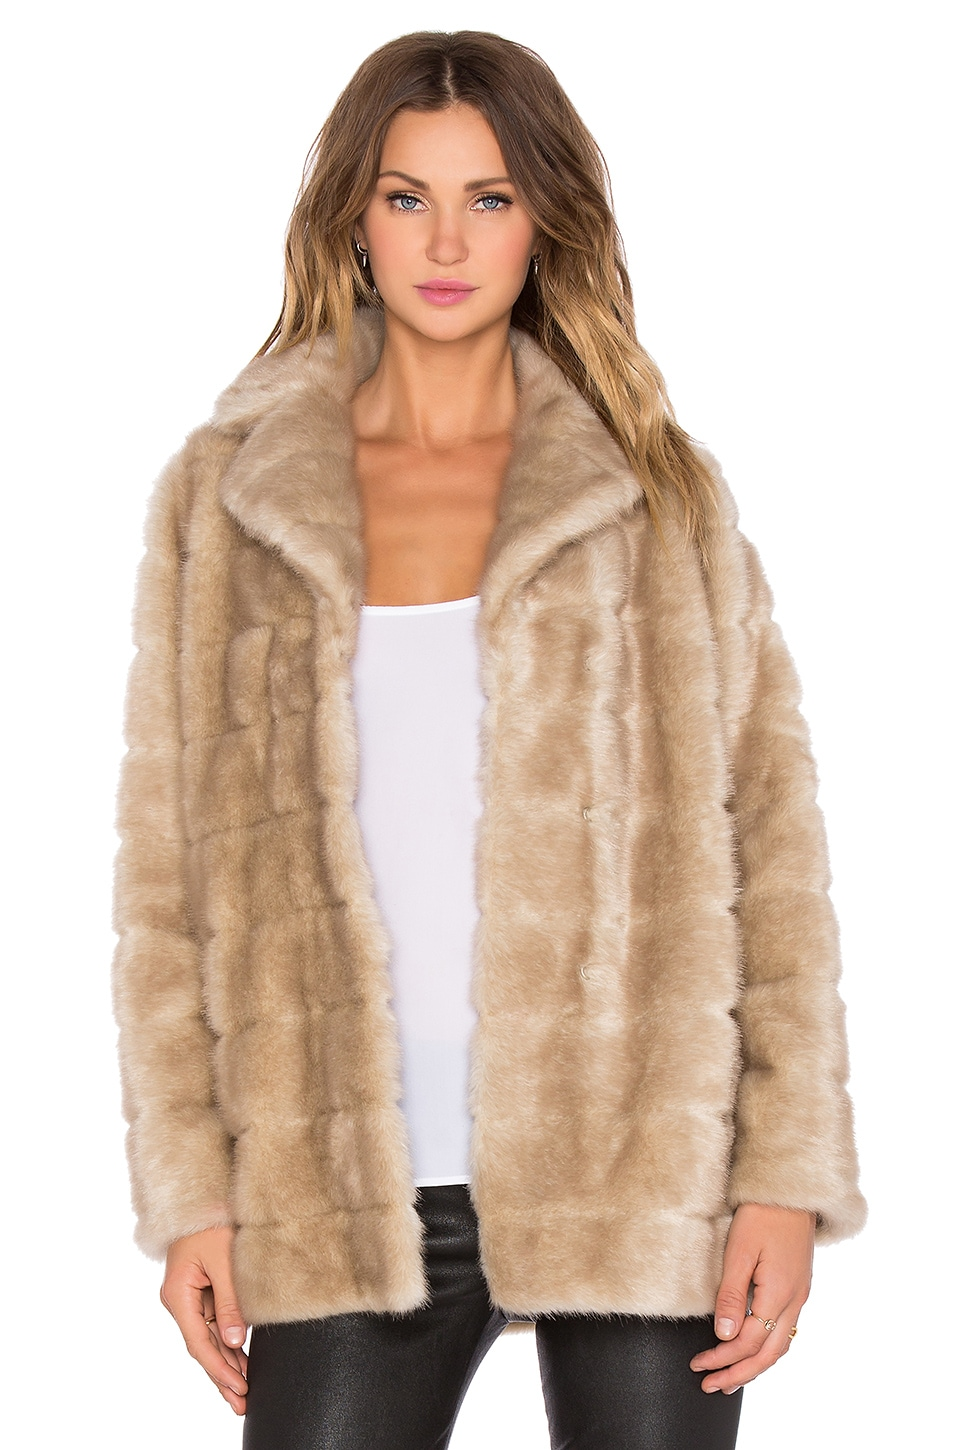 kate spade new york Blonde Mink Faux Fur Coat in Champagne | REVOLVE